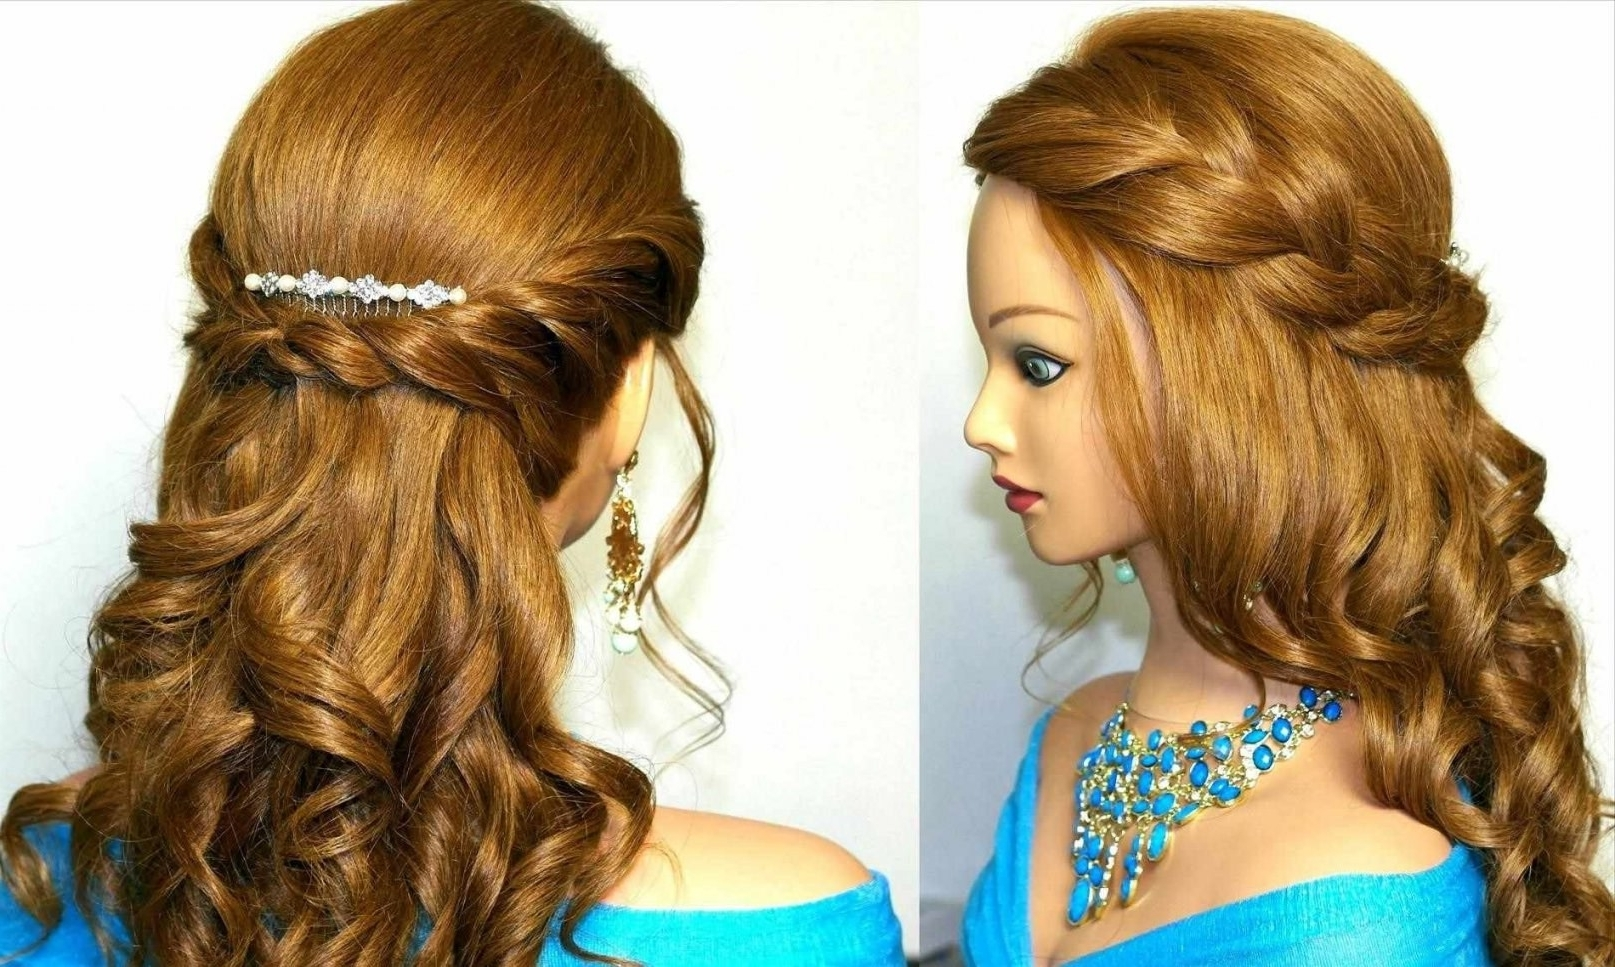 Most Up To Date Hairstyles For Medium Length Hair For Indian Wedding Intended For Easy Indian Wedding Hairstyles For Medium Length Hair (View 10 of 15)